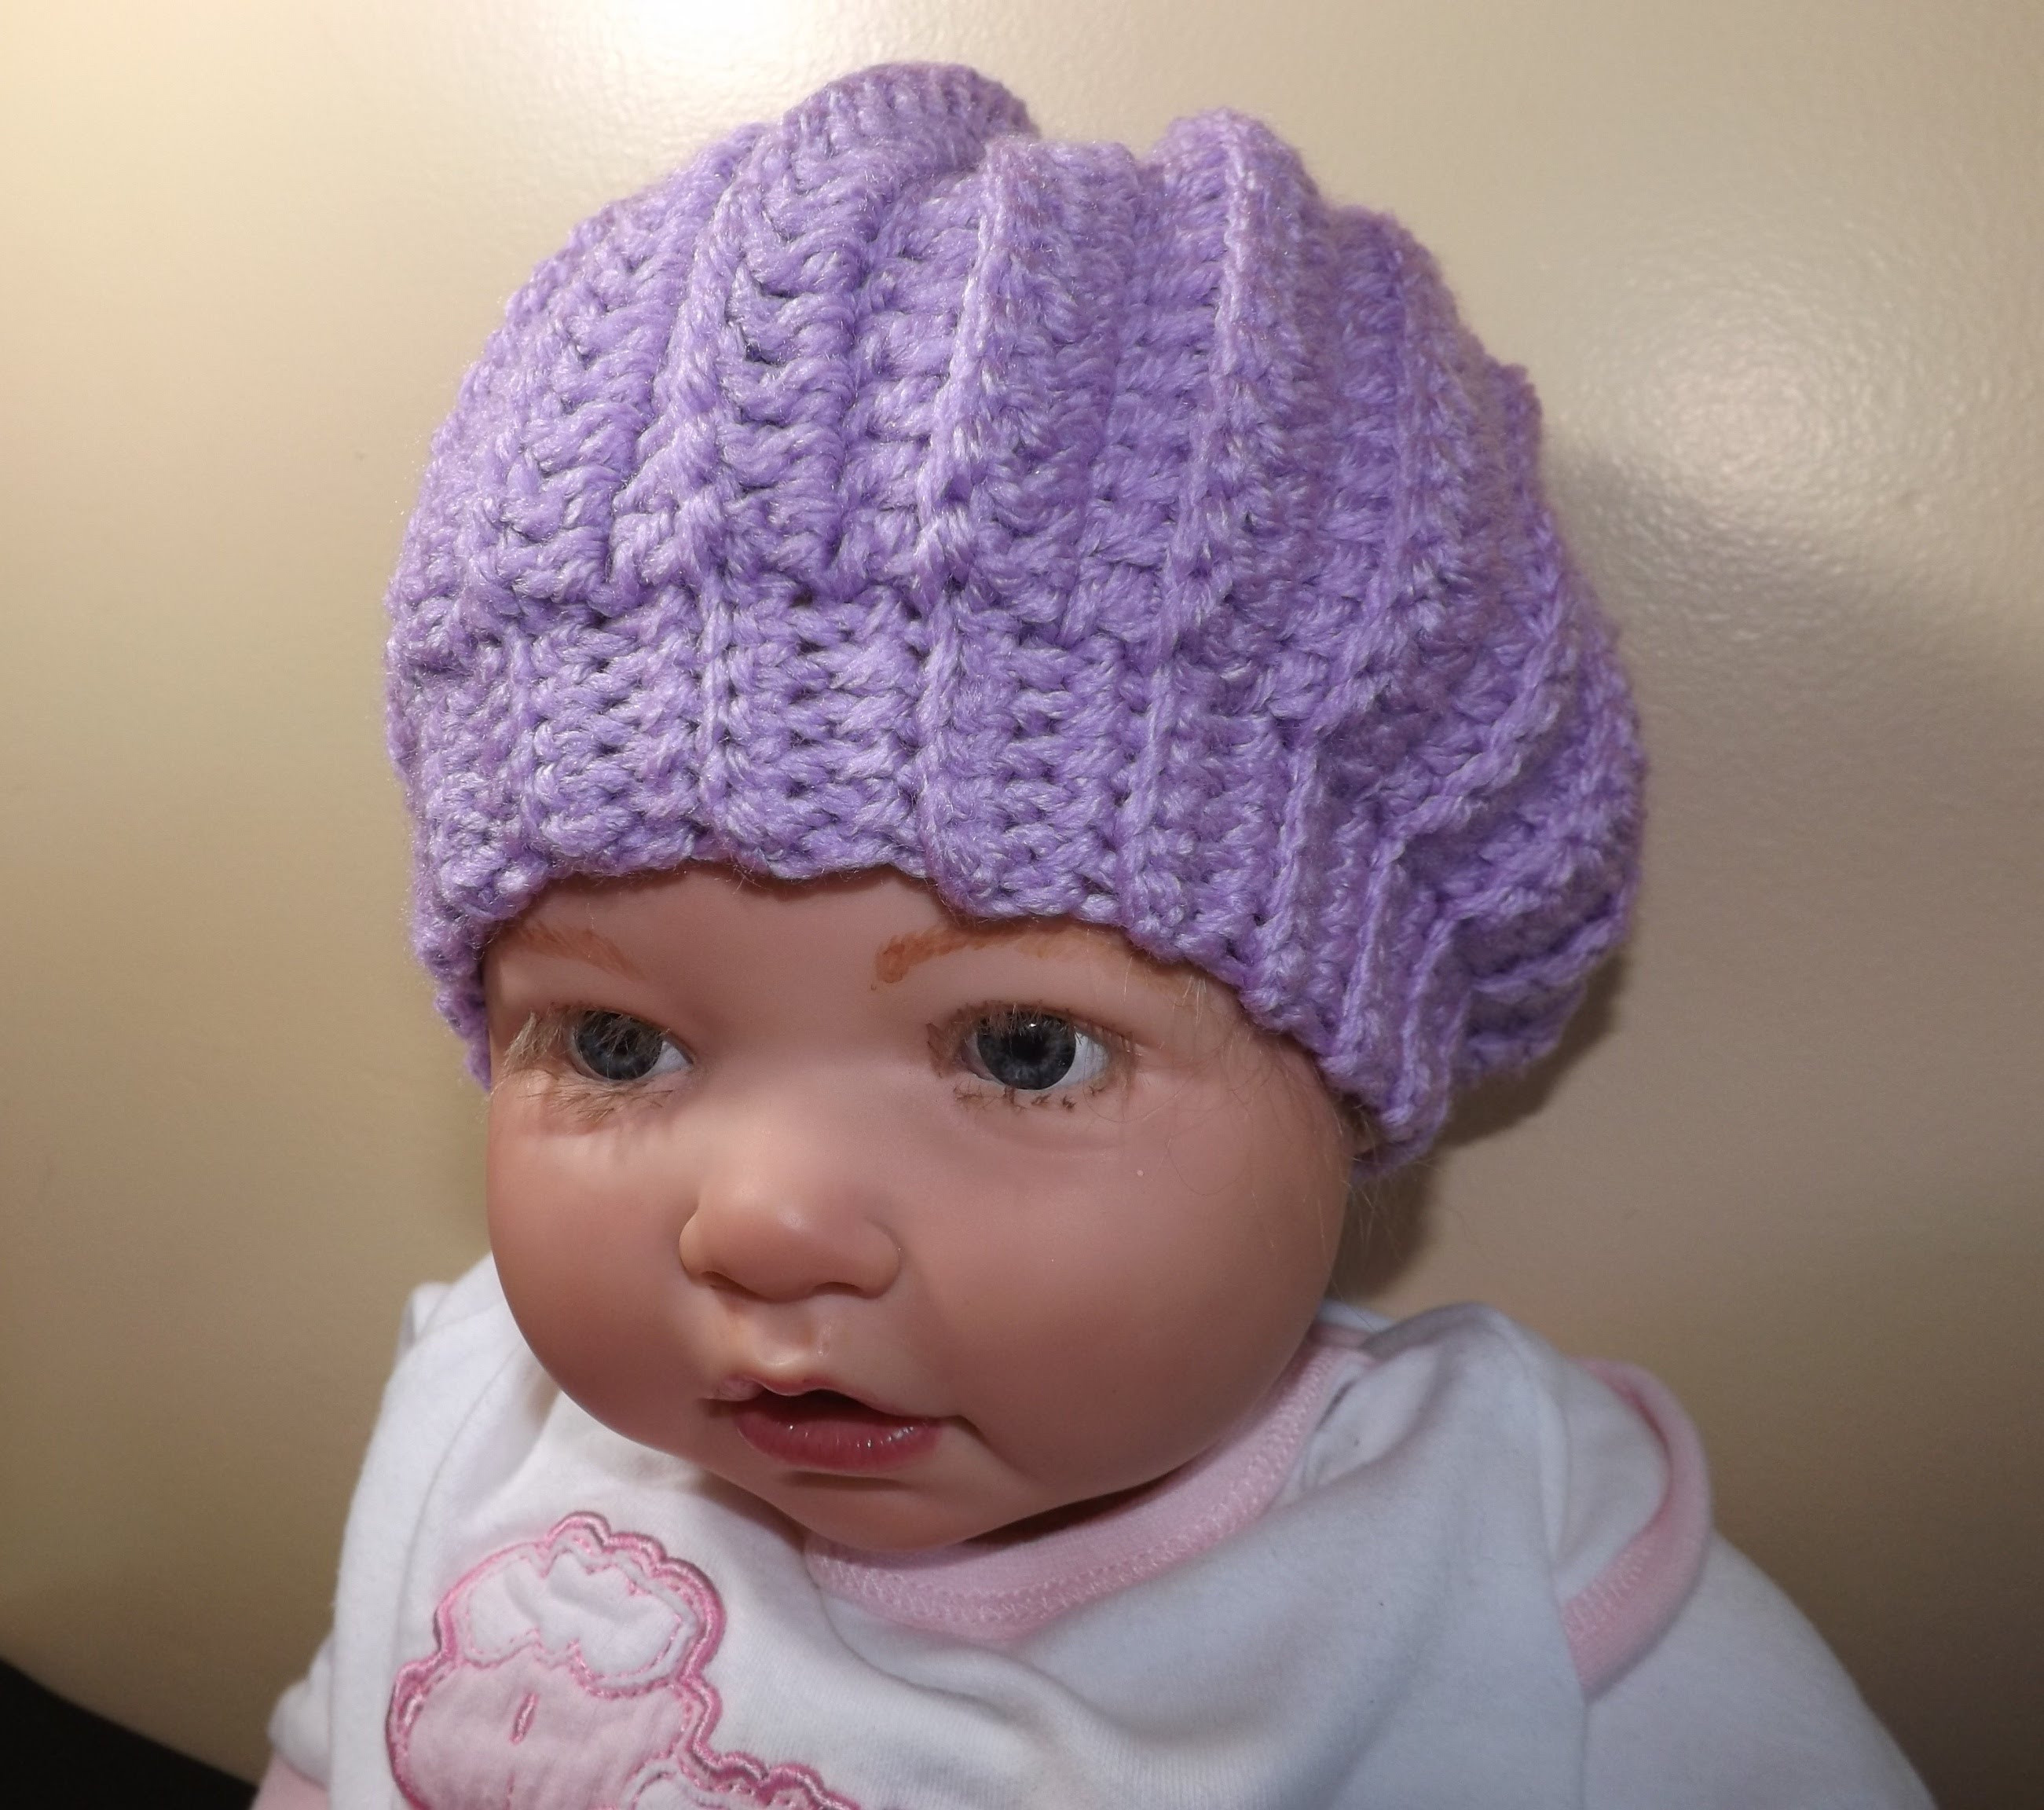 Crochet Baby Hats Perfect for Holiday Gifts StyleSkier